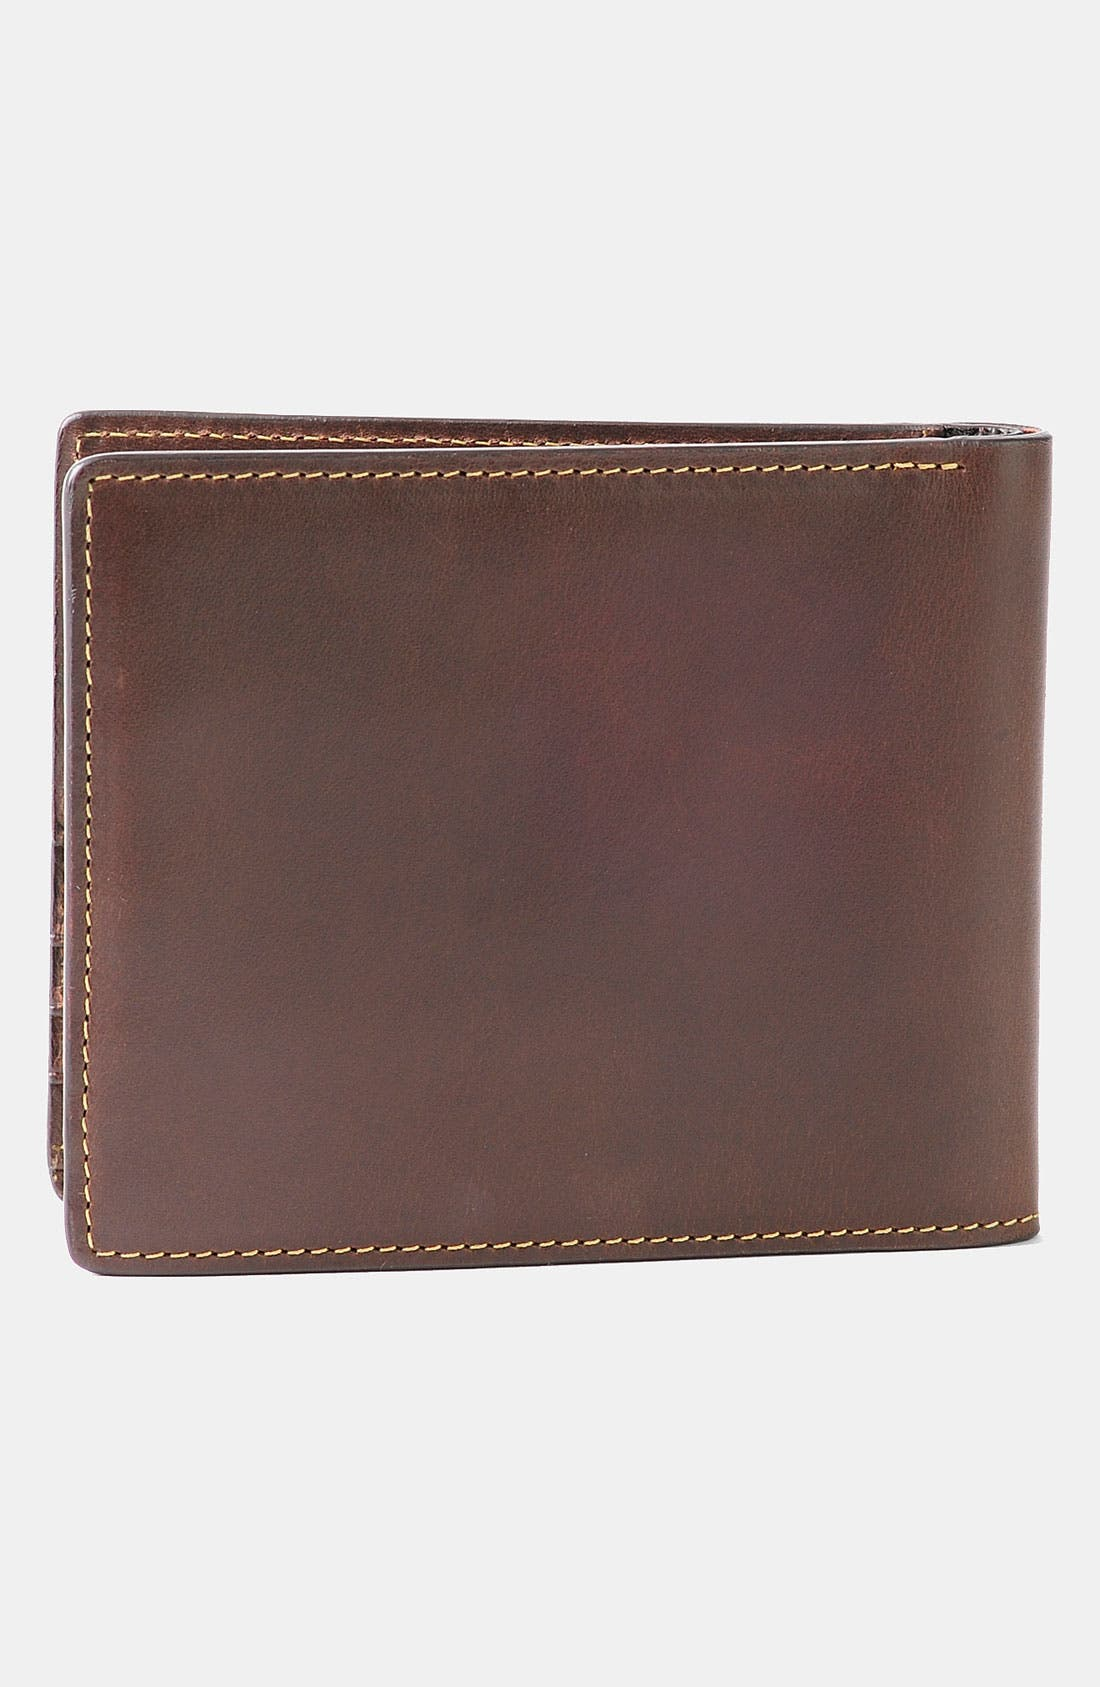 'Bryant' RFID Blocker Slimfold Wallet,                             Alternate thumbnail 4, color,